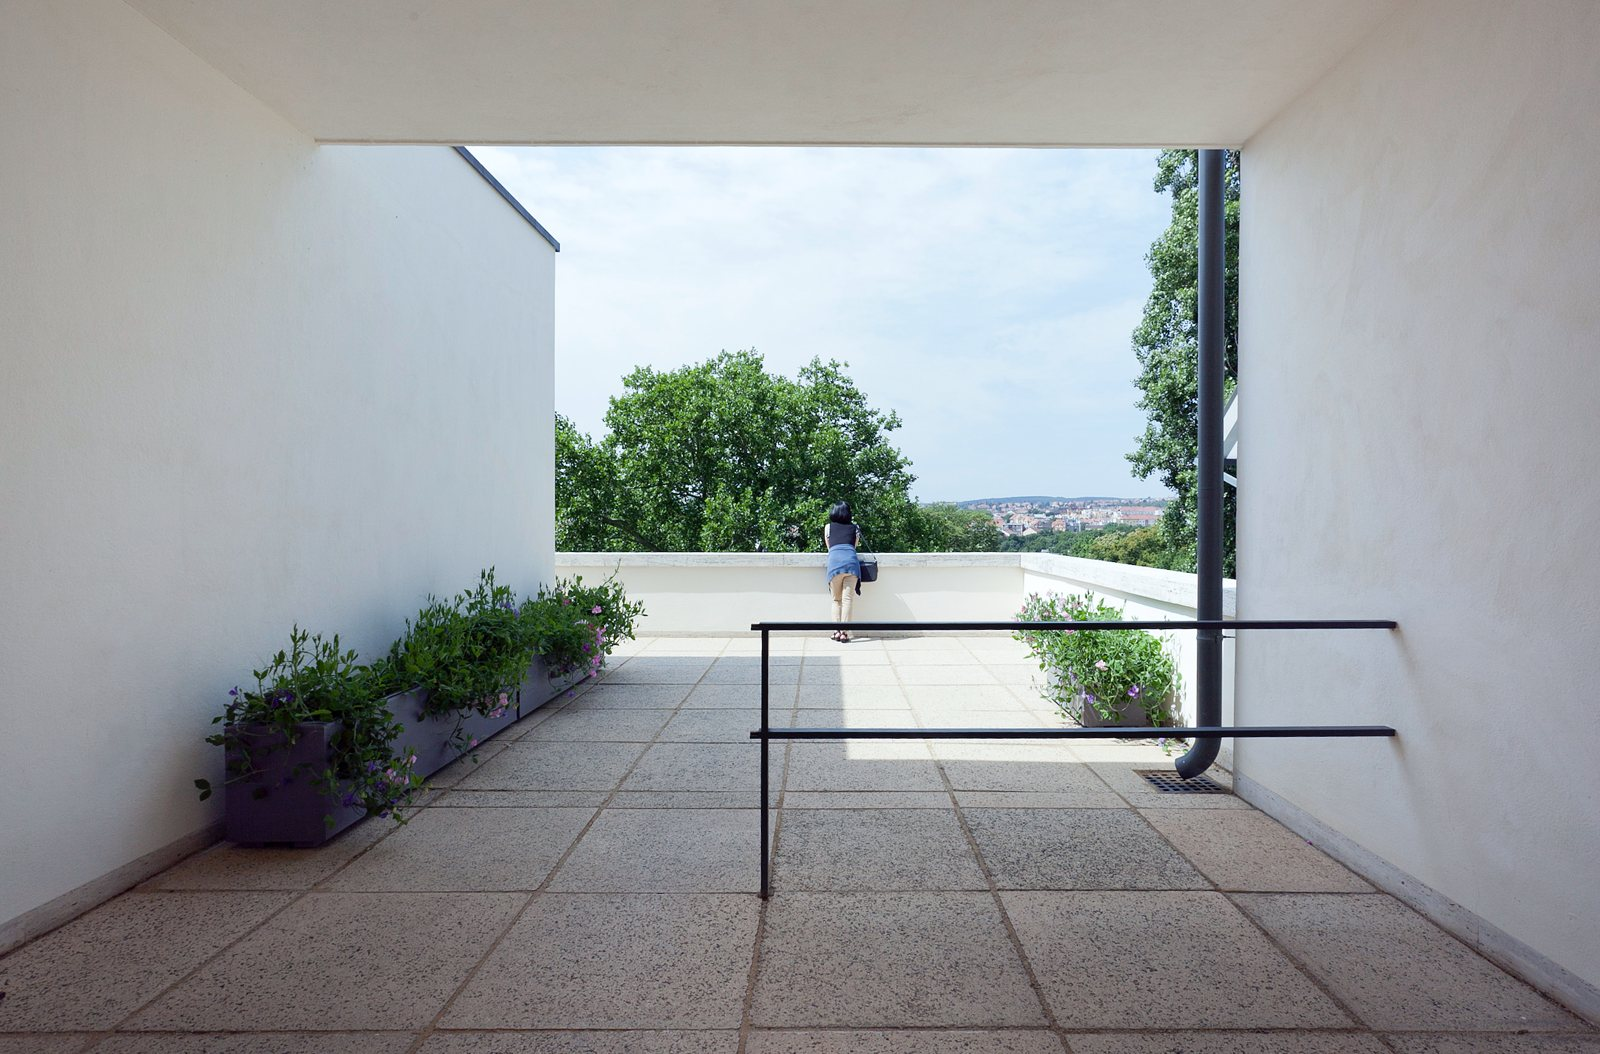 Villa Tugendhat Modern Roof Terrace Villa Tugendhat By Ludwig Mies Van Der Rohe